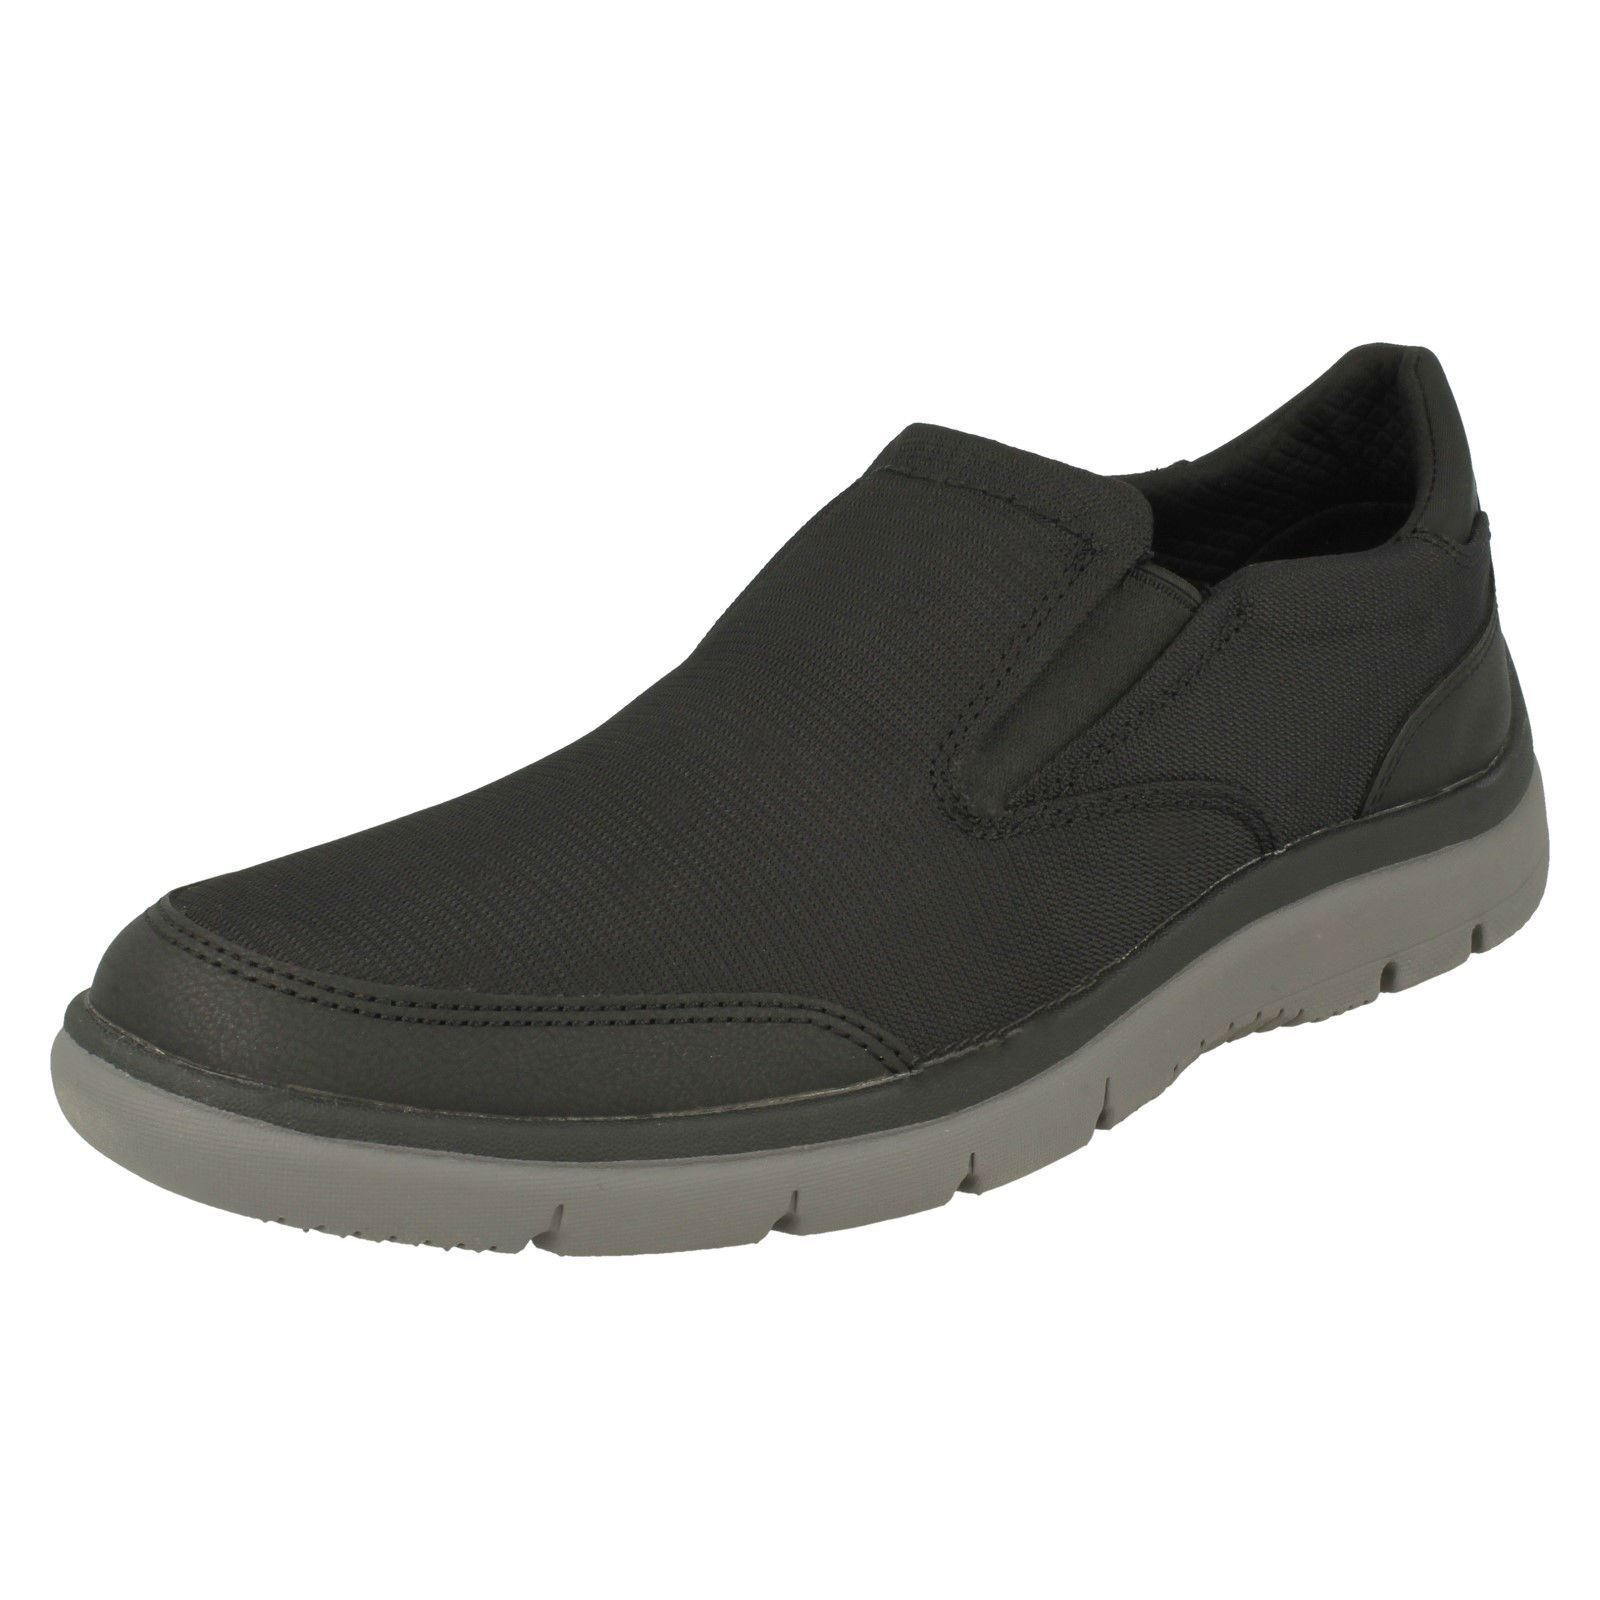 Mens Clarks Casual Slip On Fastening Textile Trainers - 'Tunsil Step'